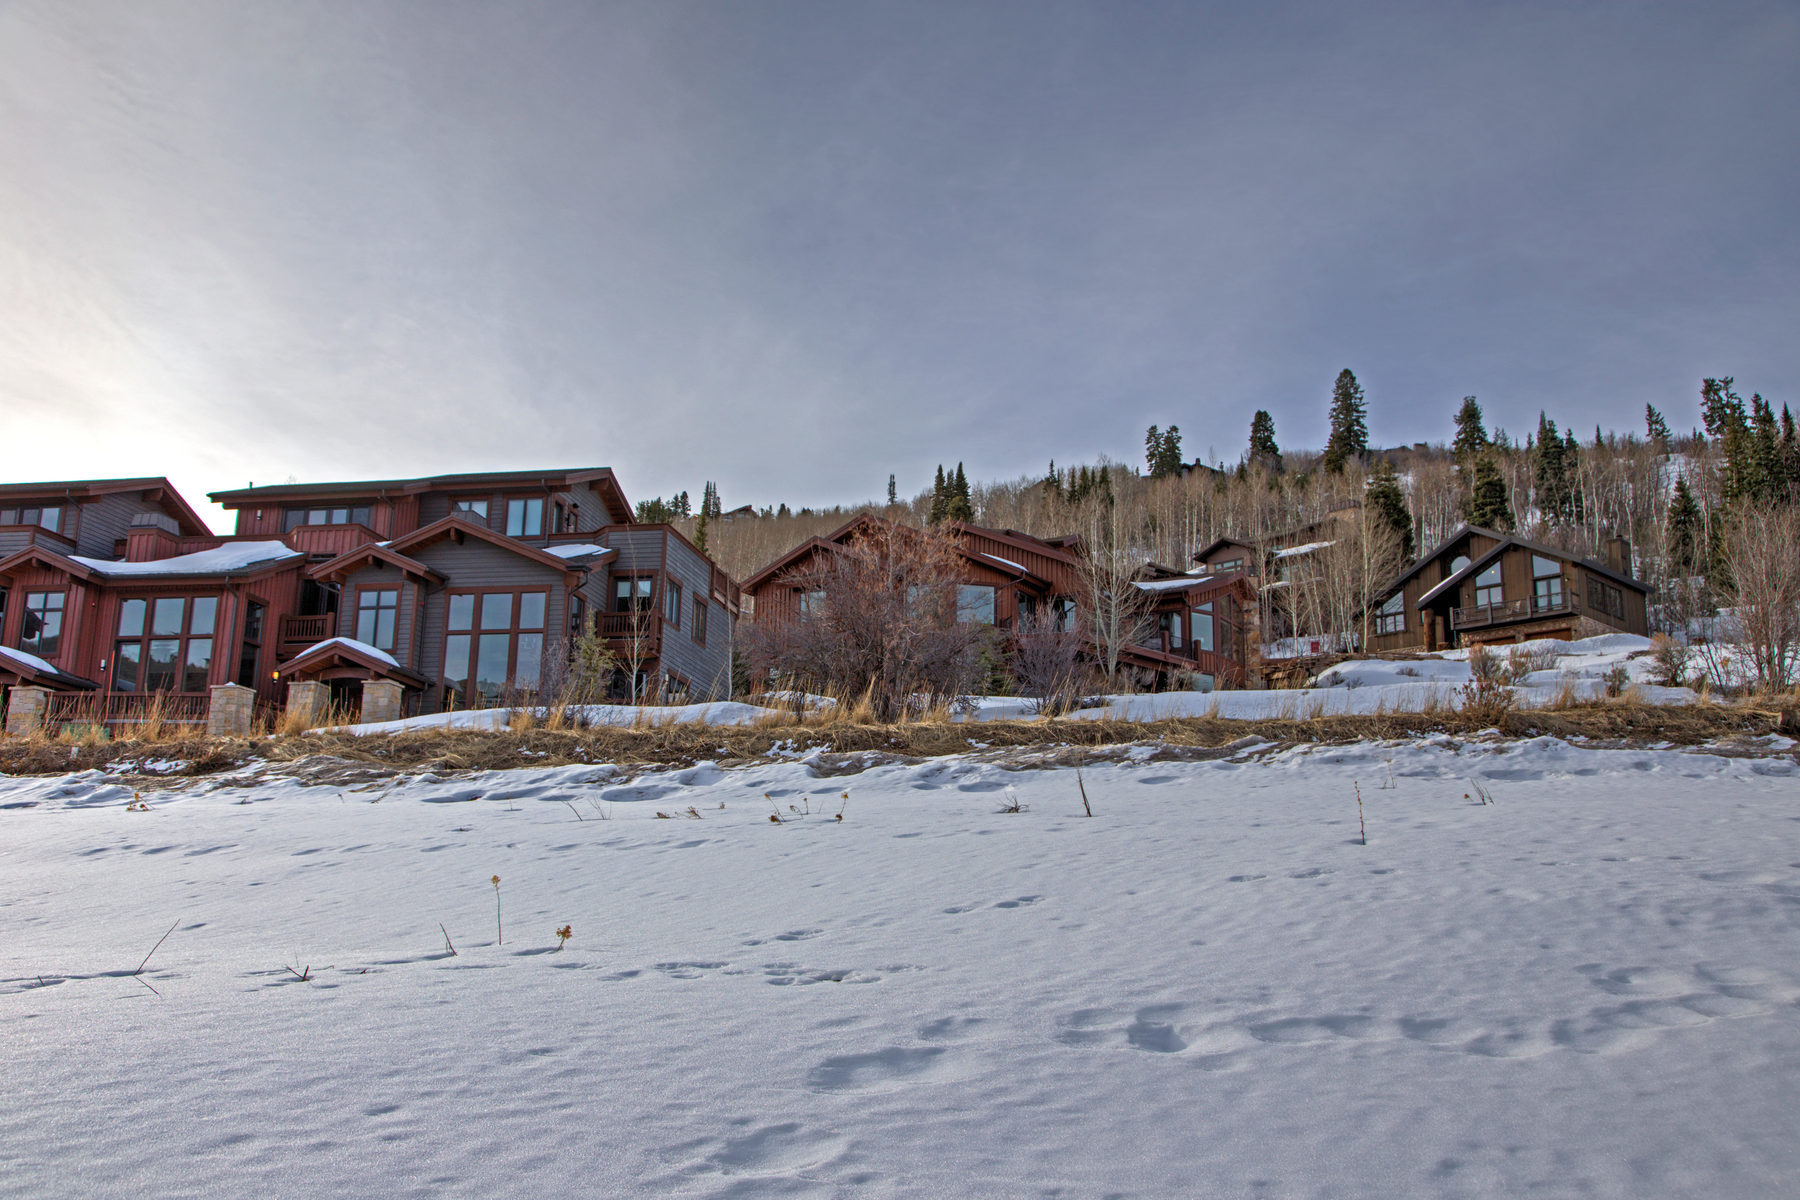 Land for Sale at Exceptional Old Town Development Opportunity 632 Deer Valley Lop Park City, Utah, 84060 United States